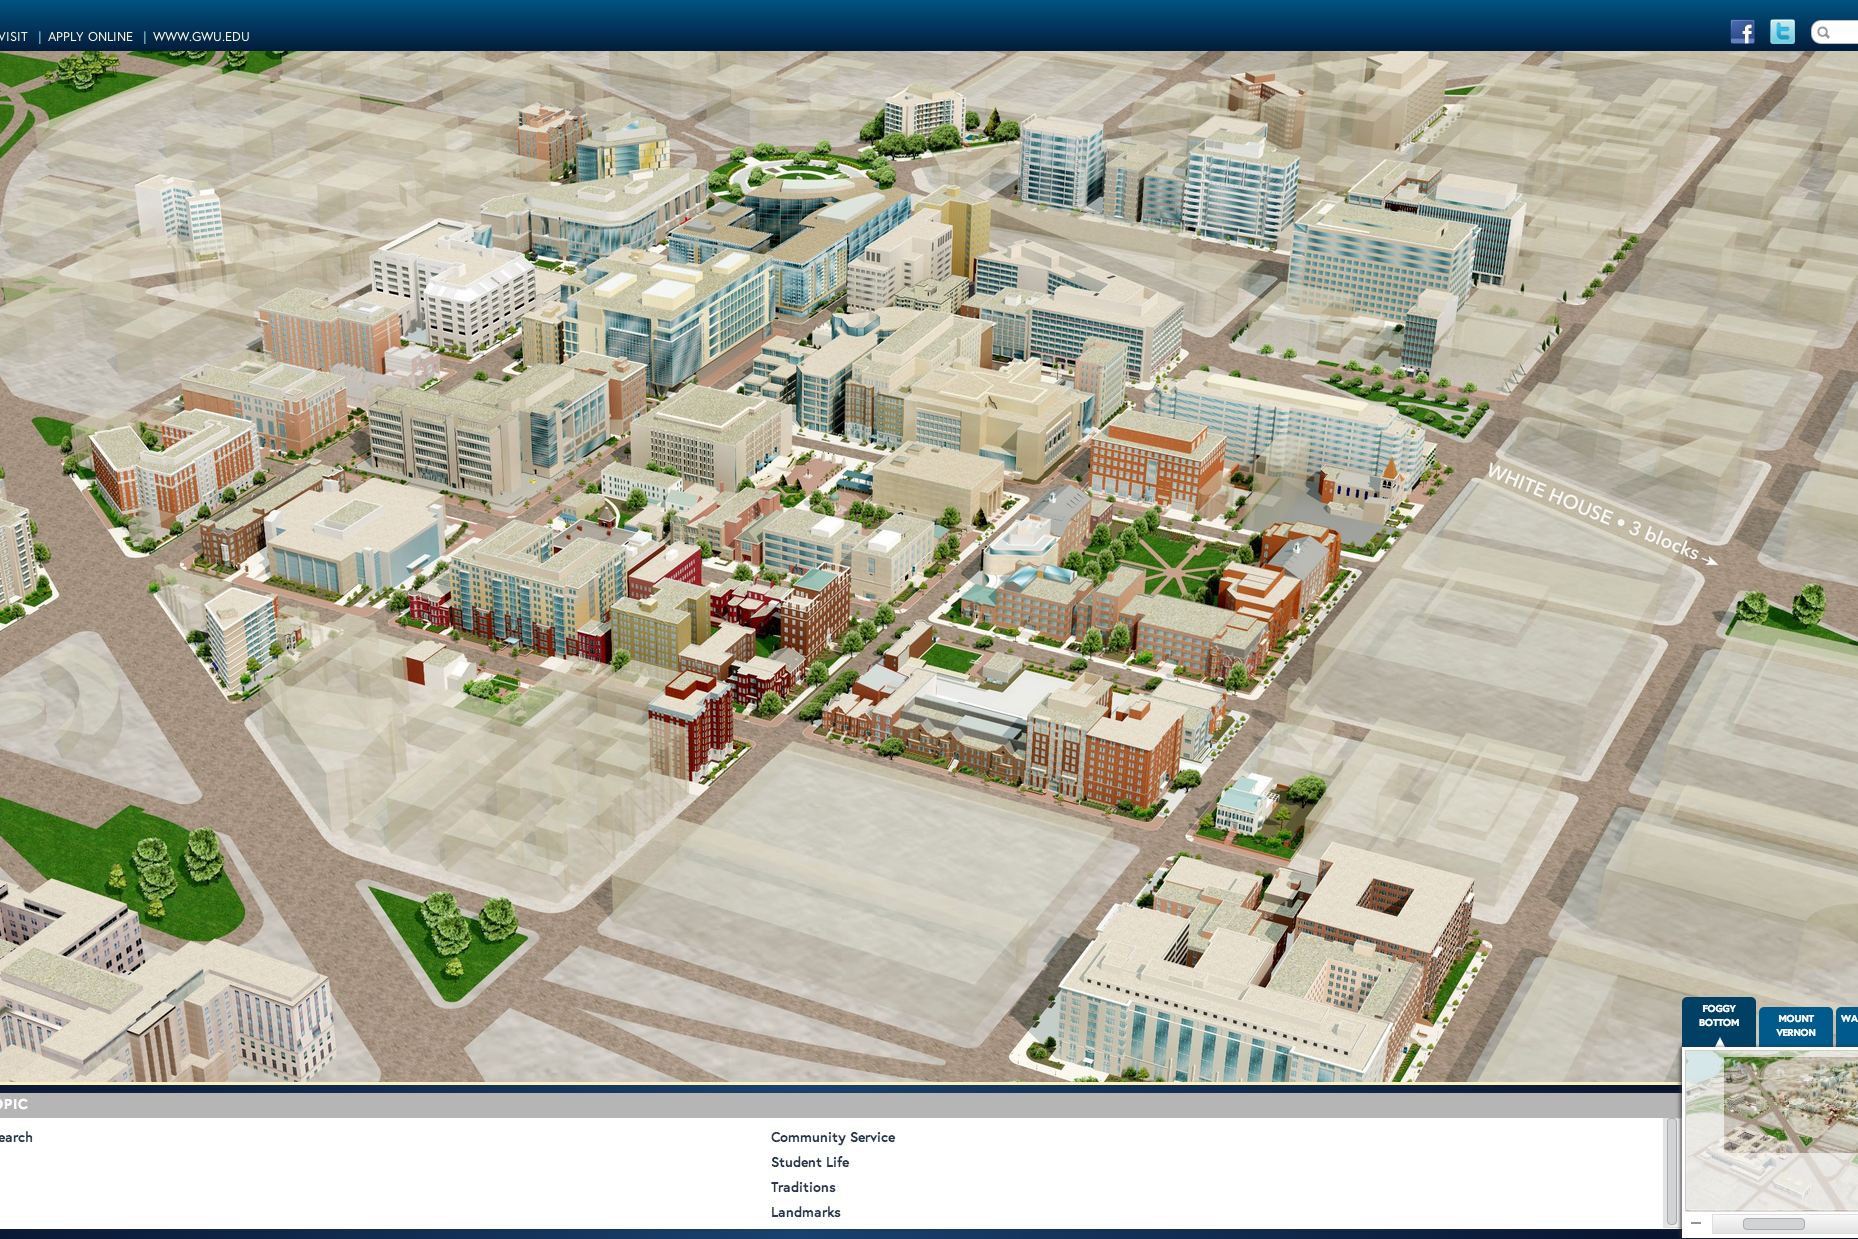 Explore Campus and DC With the GW Virtual Tour GW Today The